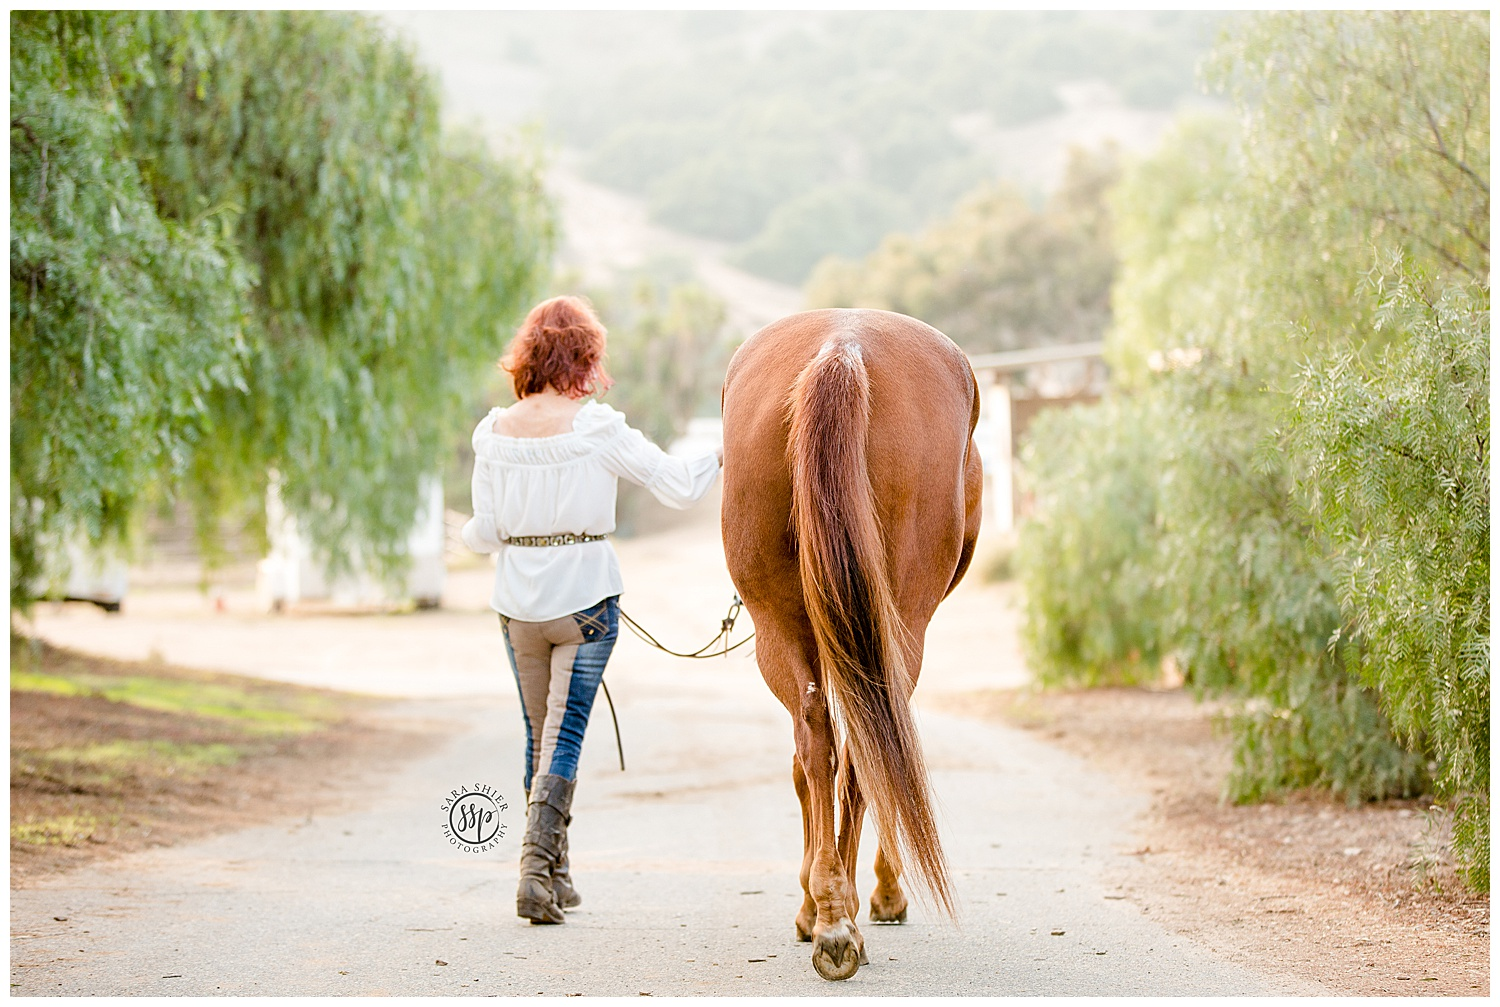 Black Background Horse Rider Equine Photographer Southern California Sara Shier Photography SoCal Equestrian Cowgirl_0330.jpg